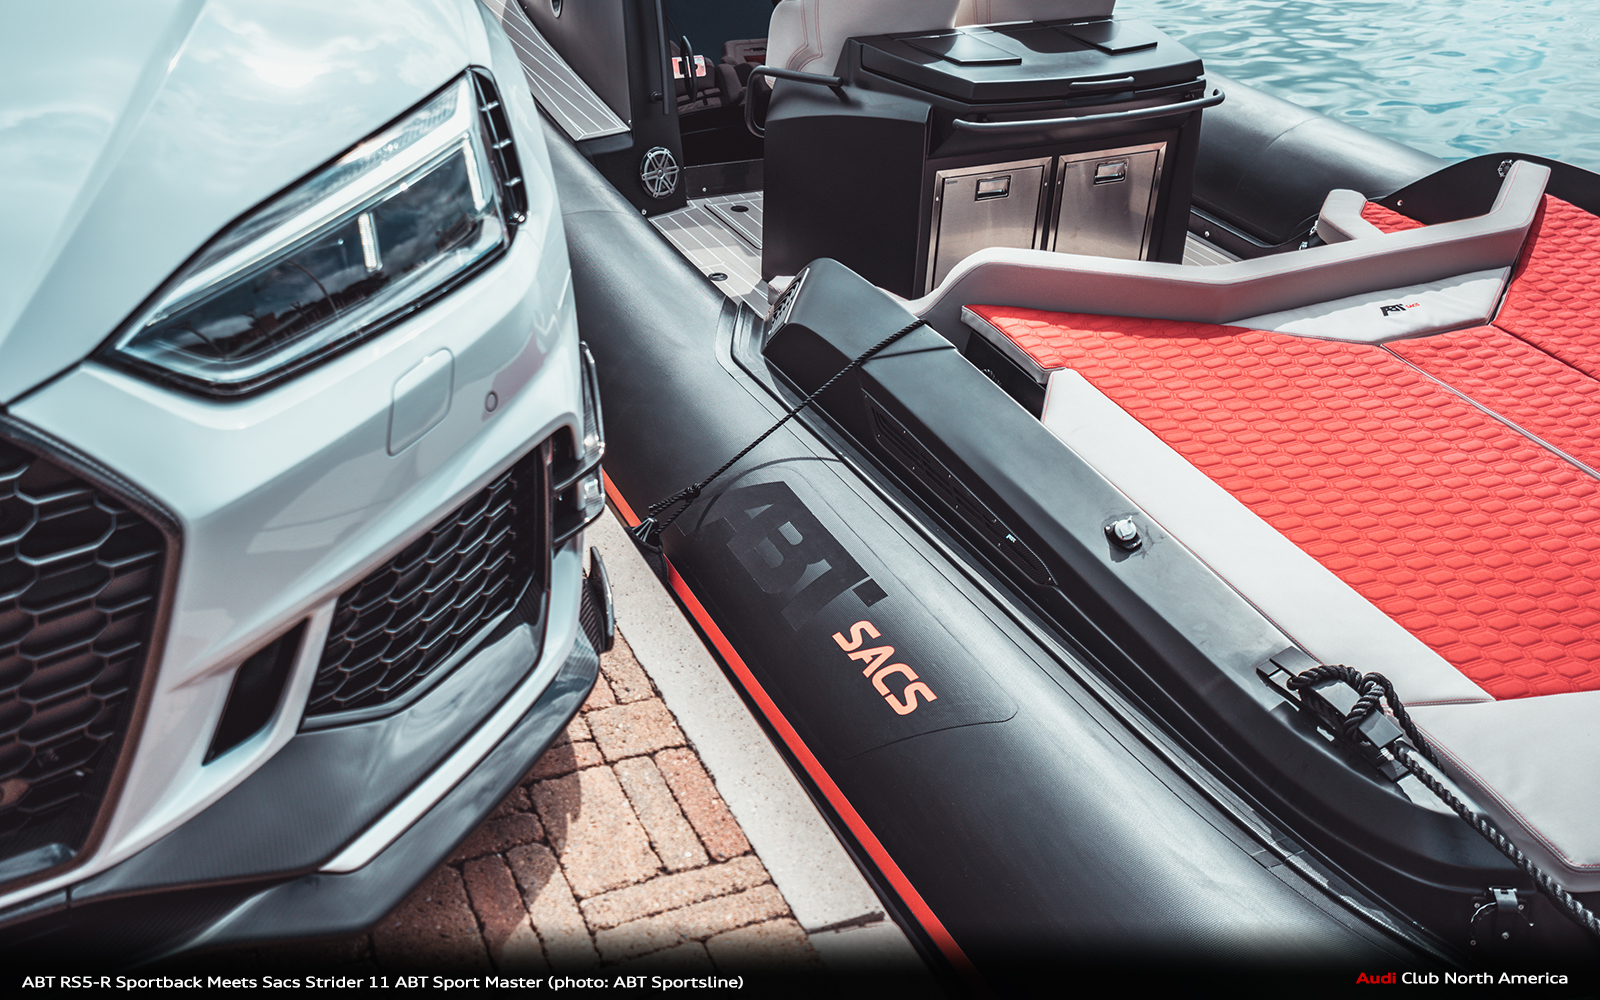 Fire and Water: ABT RS5-R Sportback Meets Sacs Strider 11 ABT Sport Master